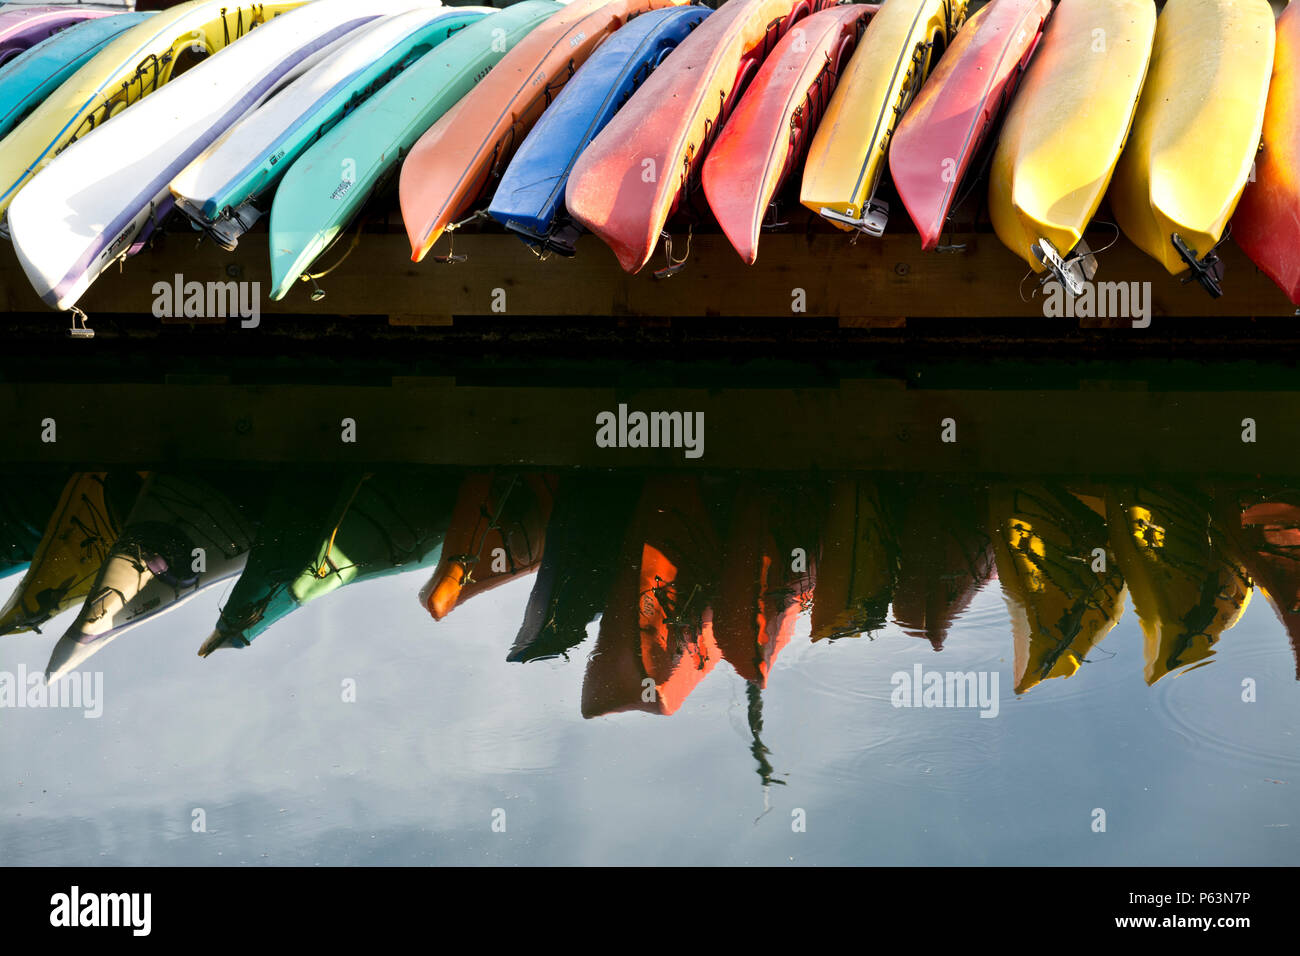 Colourful kayaks lined up on the dock in Montague Harbour marina on Galiano Island,British Columbia, Canada. - Stock Image